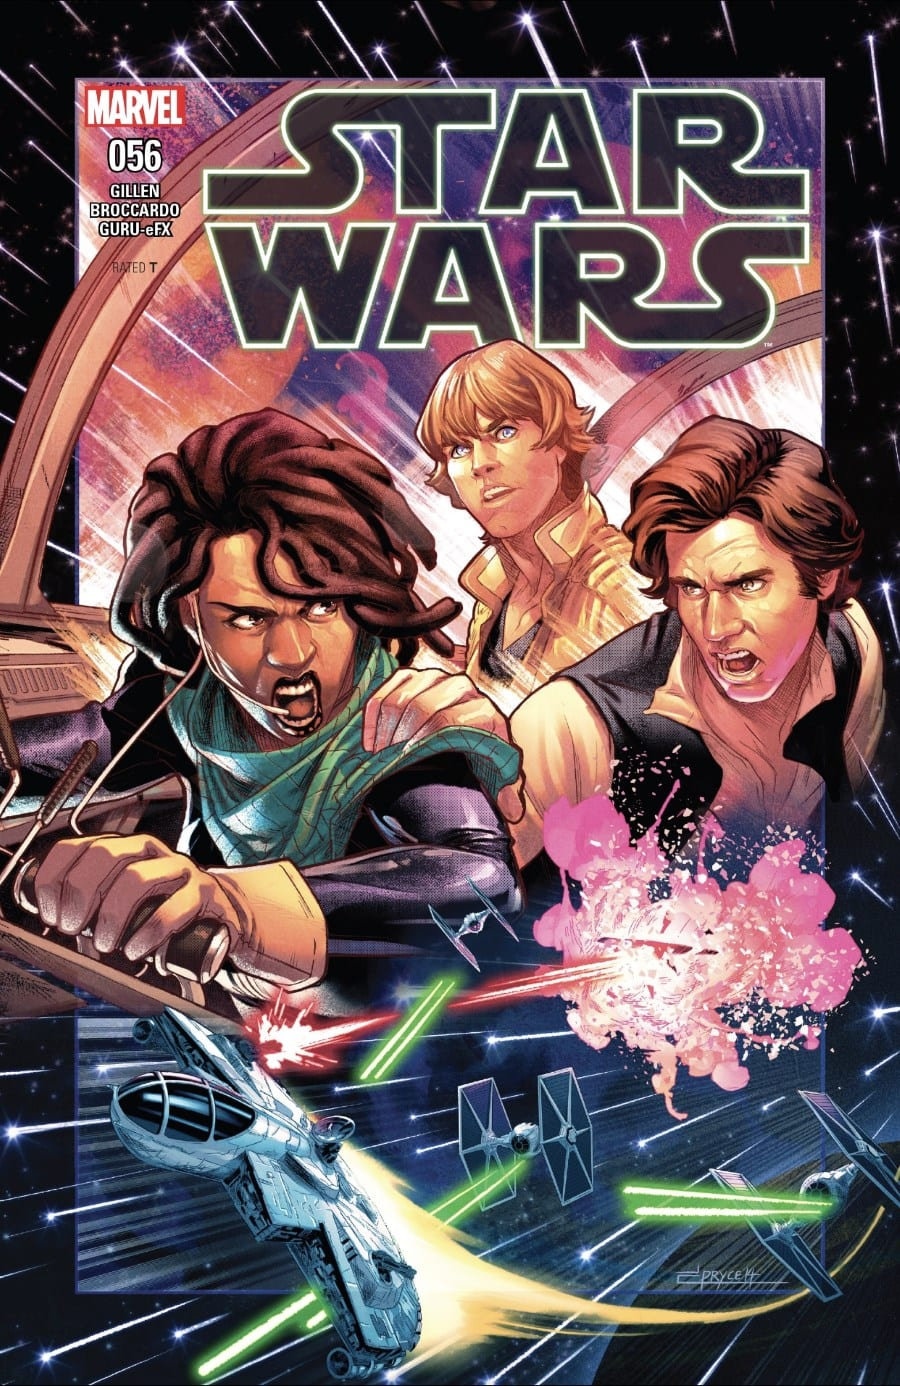 Star Wars #56 Cover